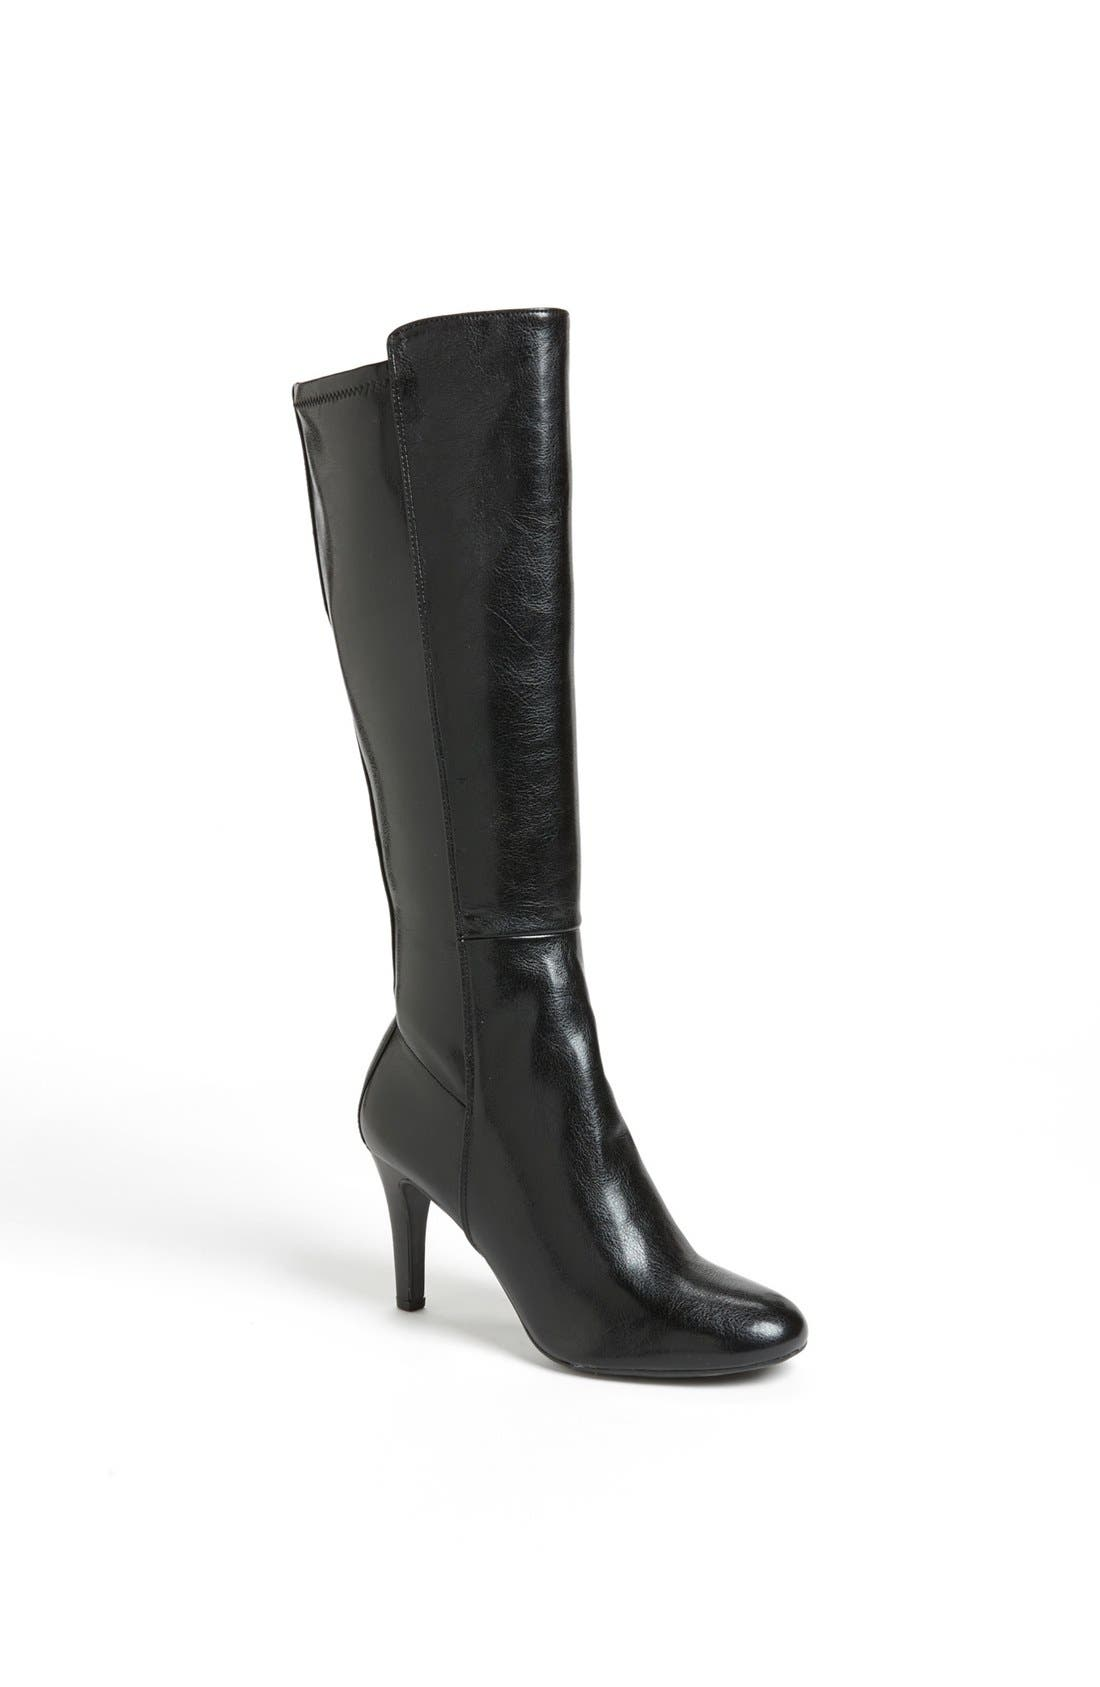 Alternate Image 1 Selected - Franco Sarto 'Dover' Boot (Special Purchase)